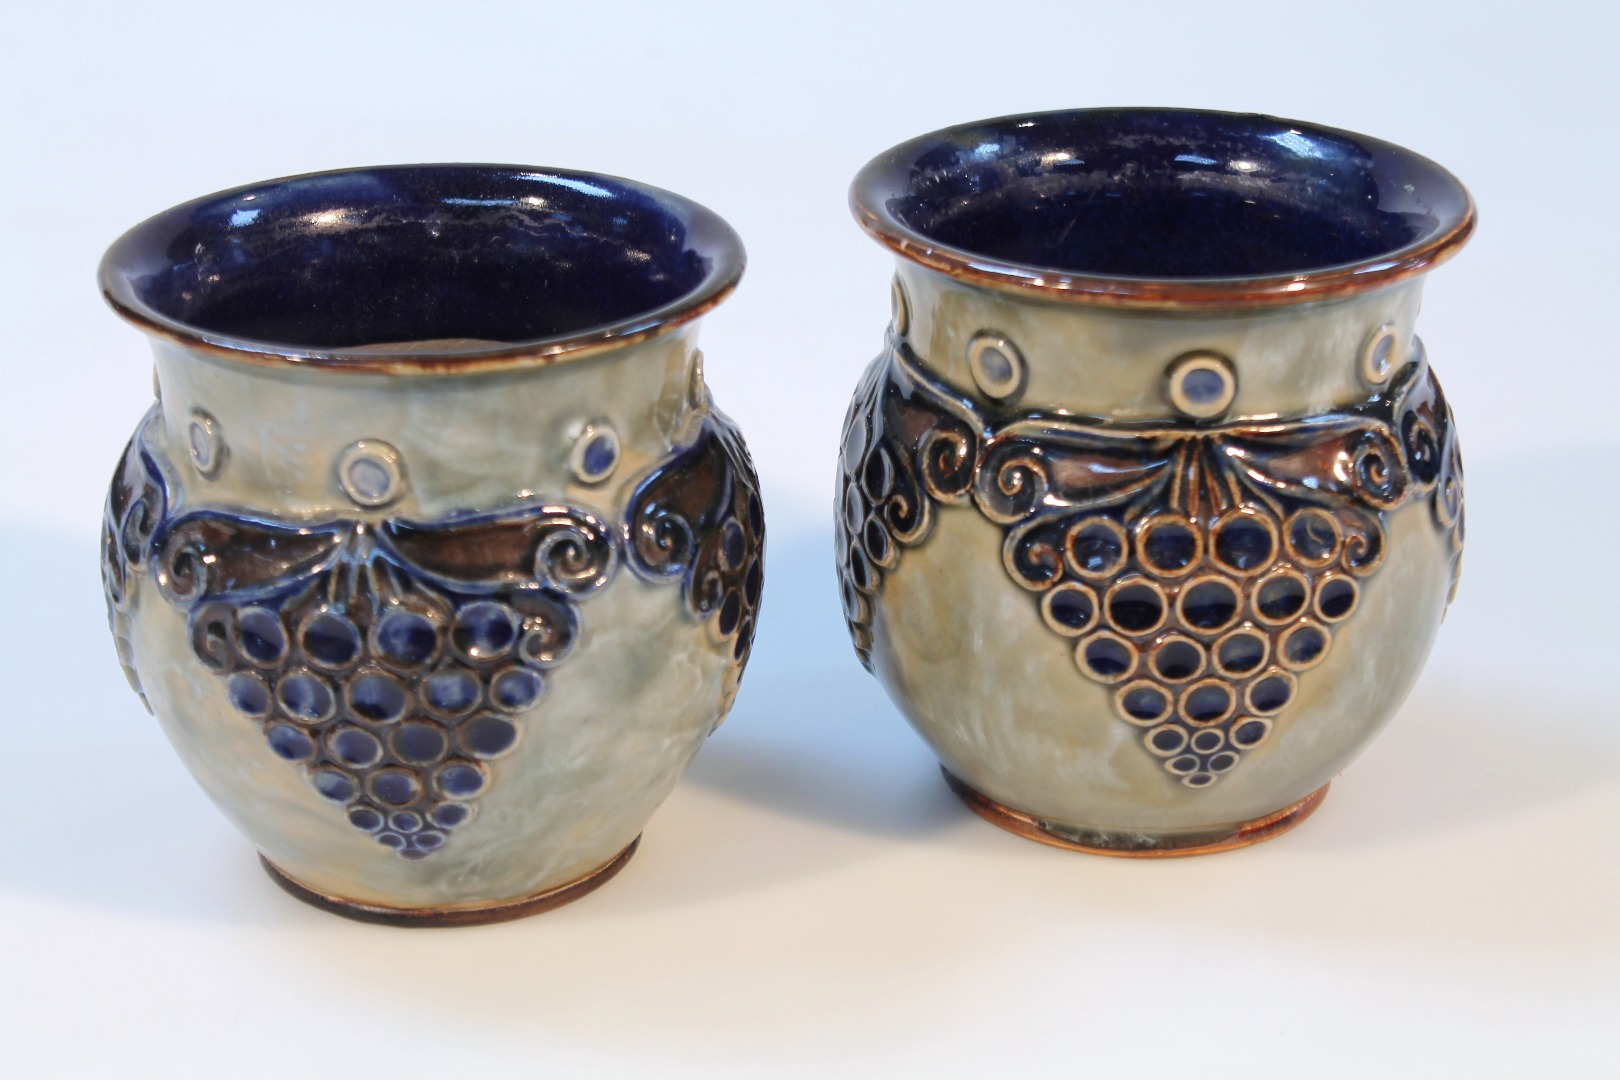 A pair of early 20thC Royal Doulton stoneware